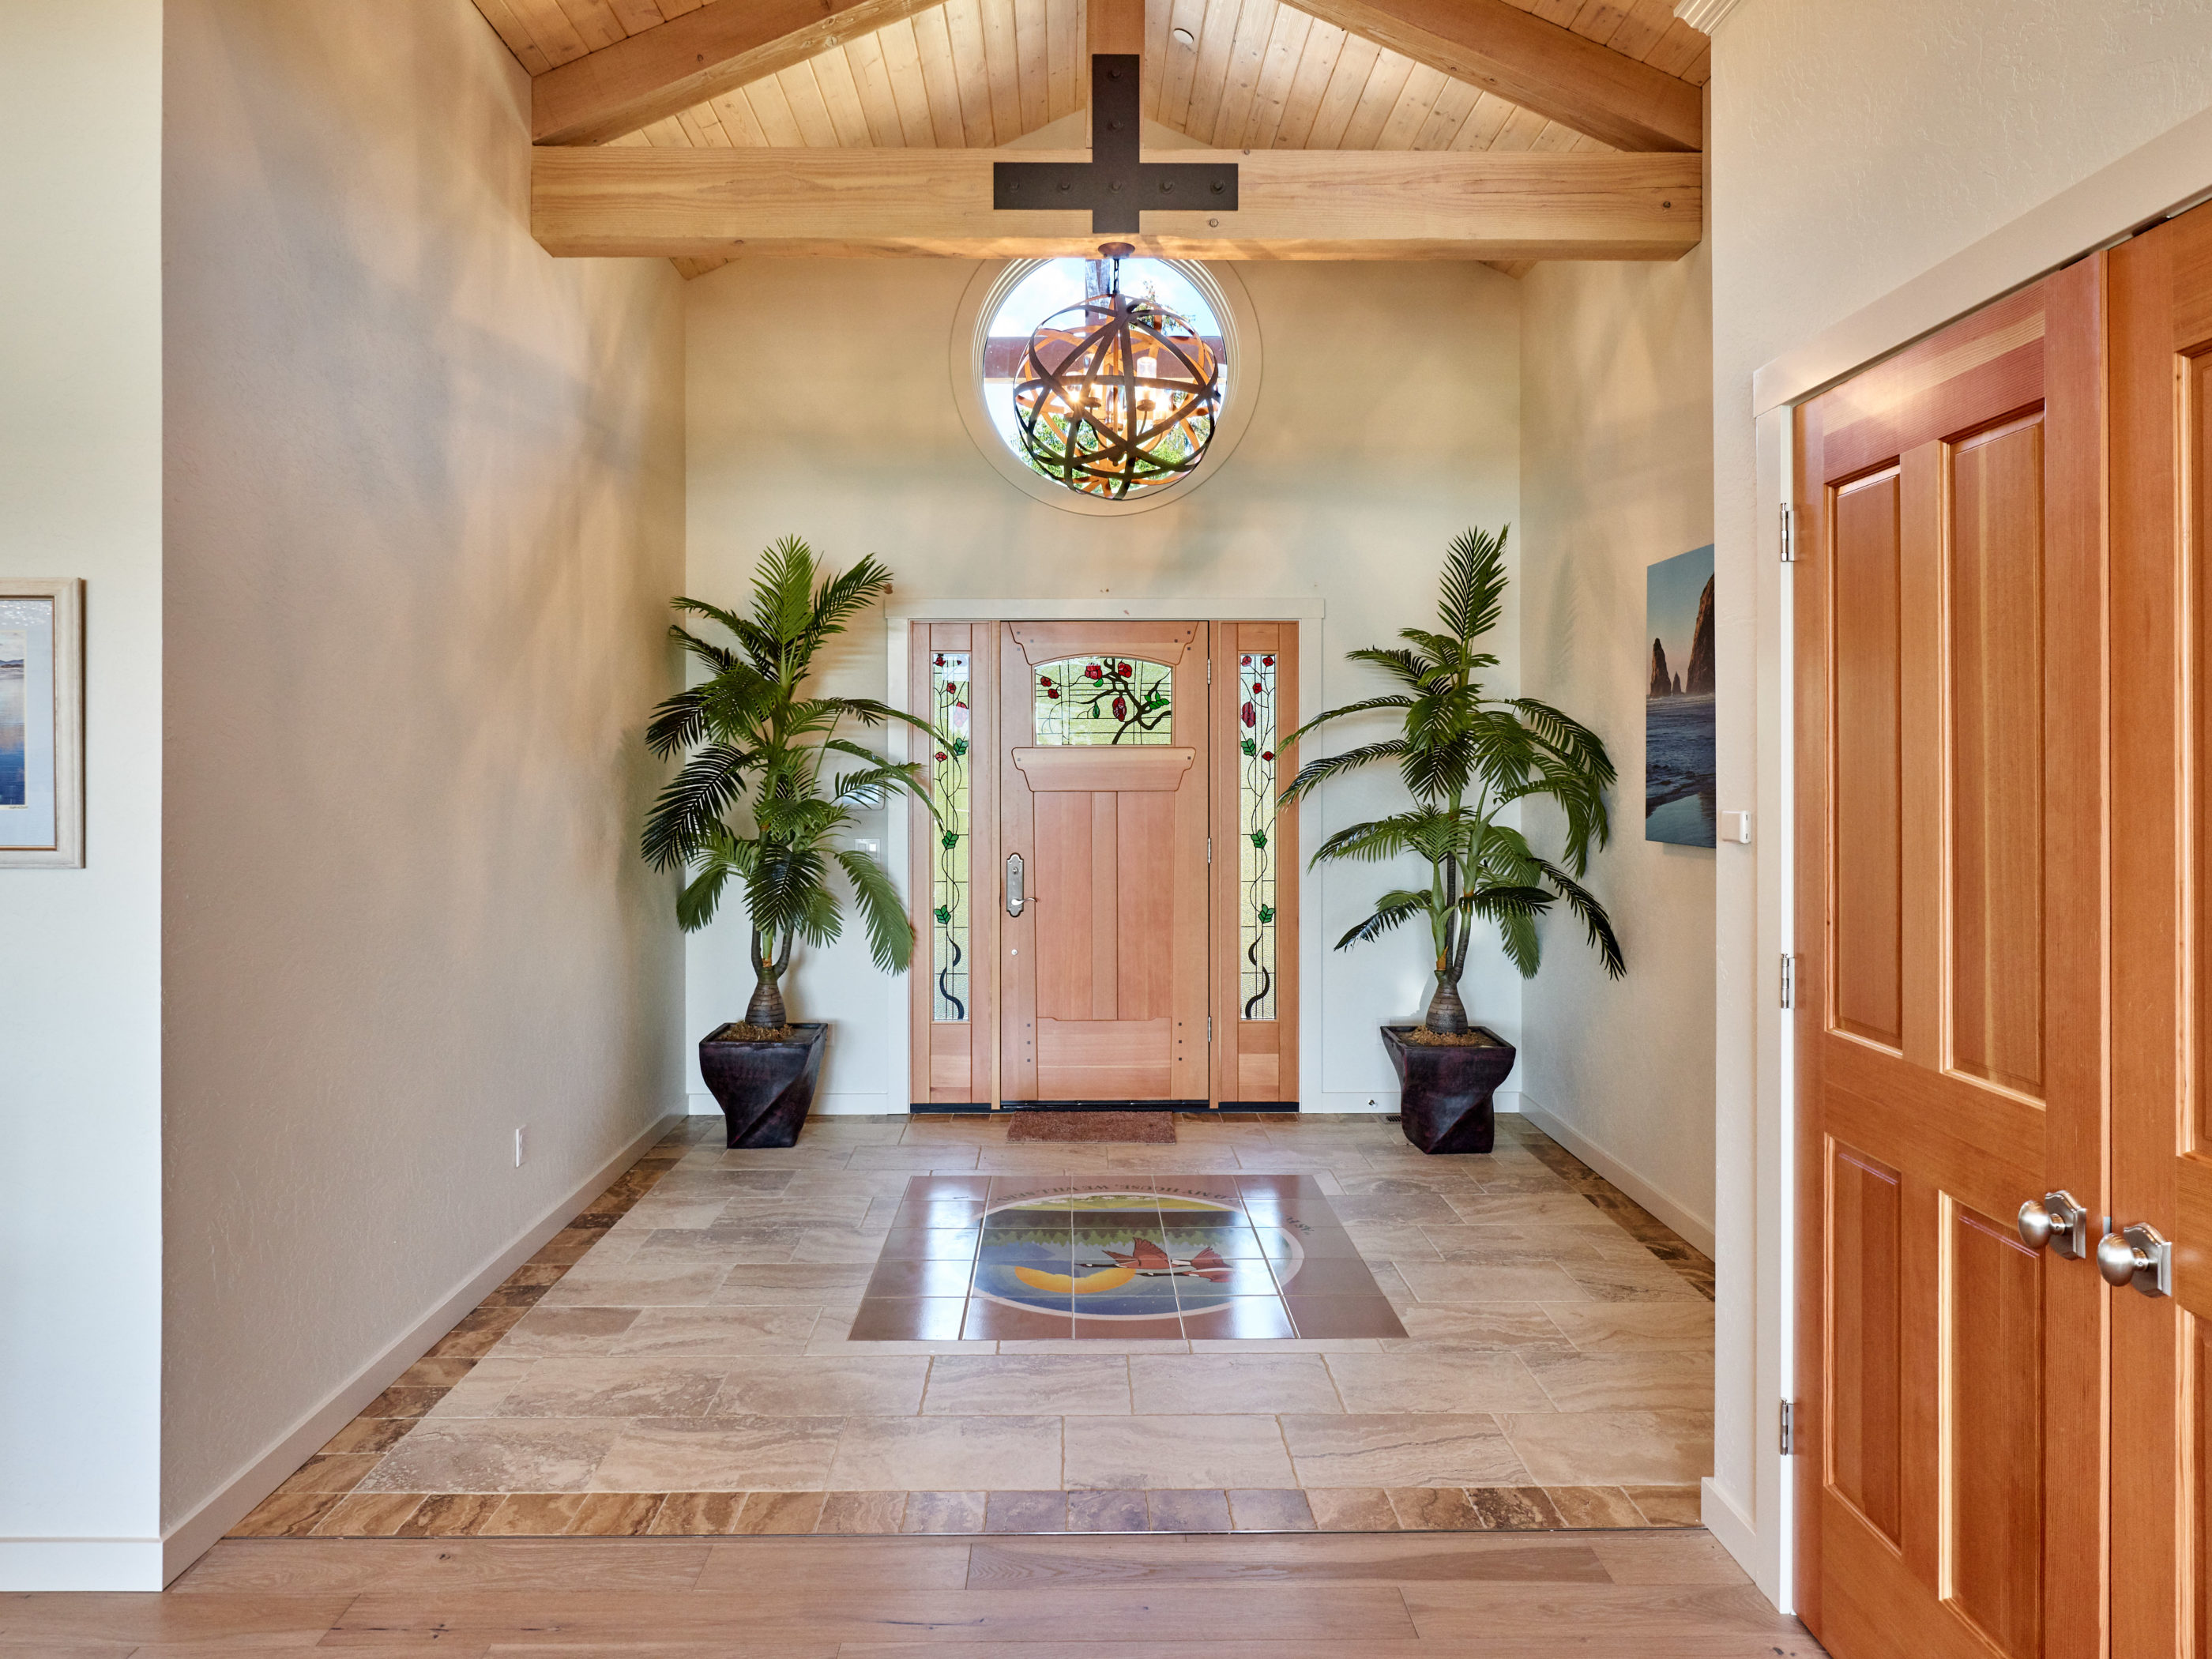 entry way with timber beams and tile flooring